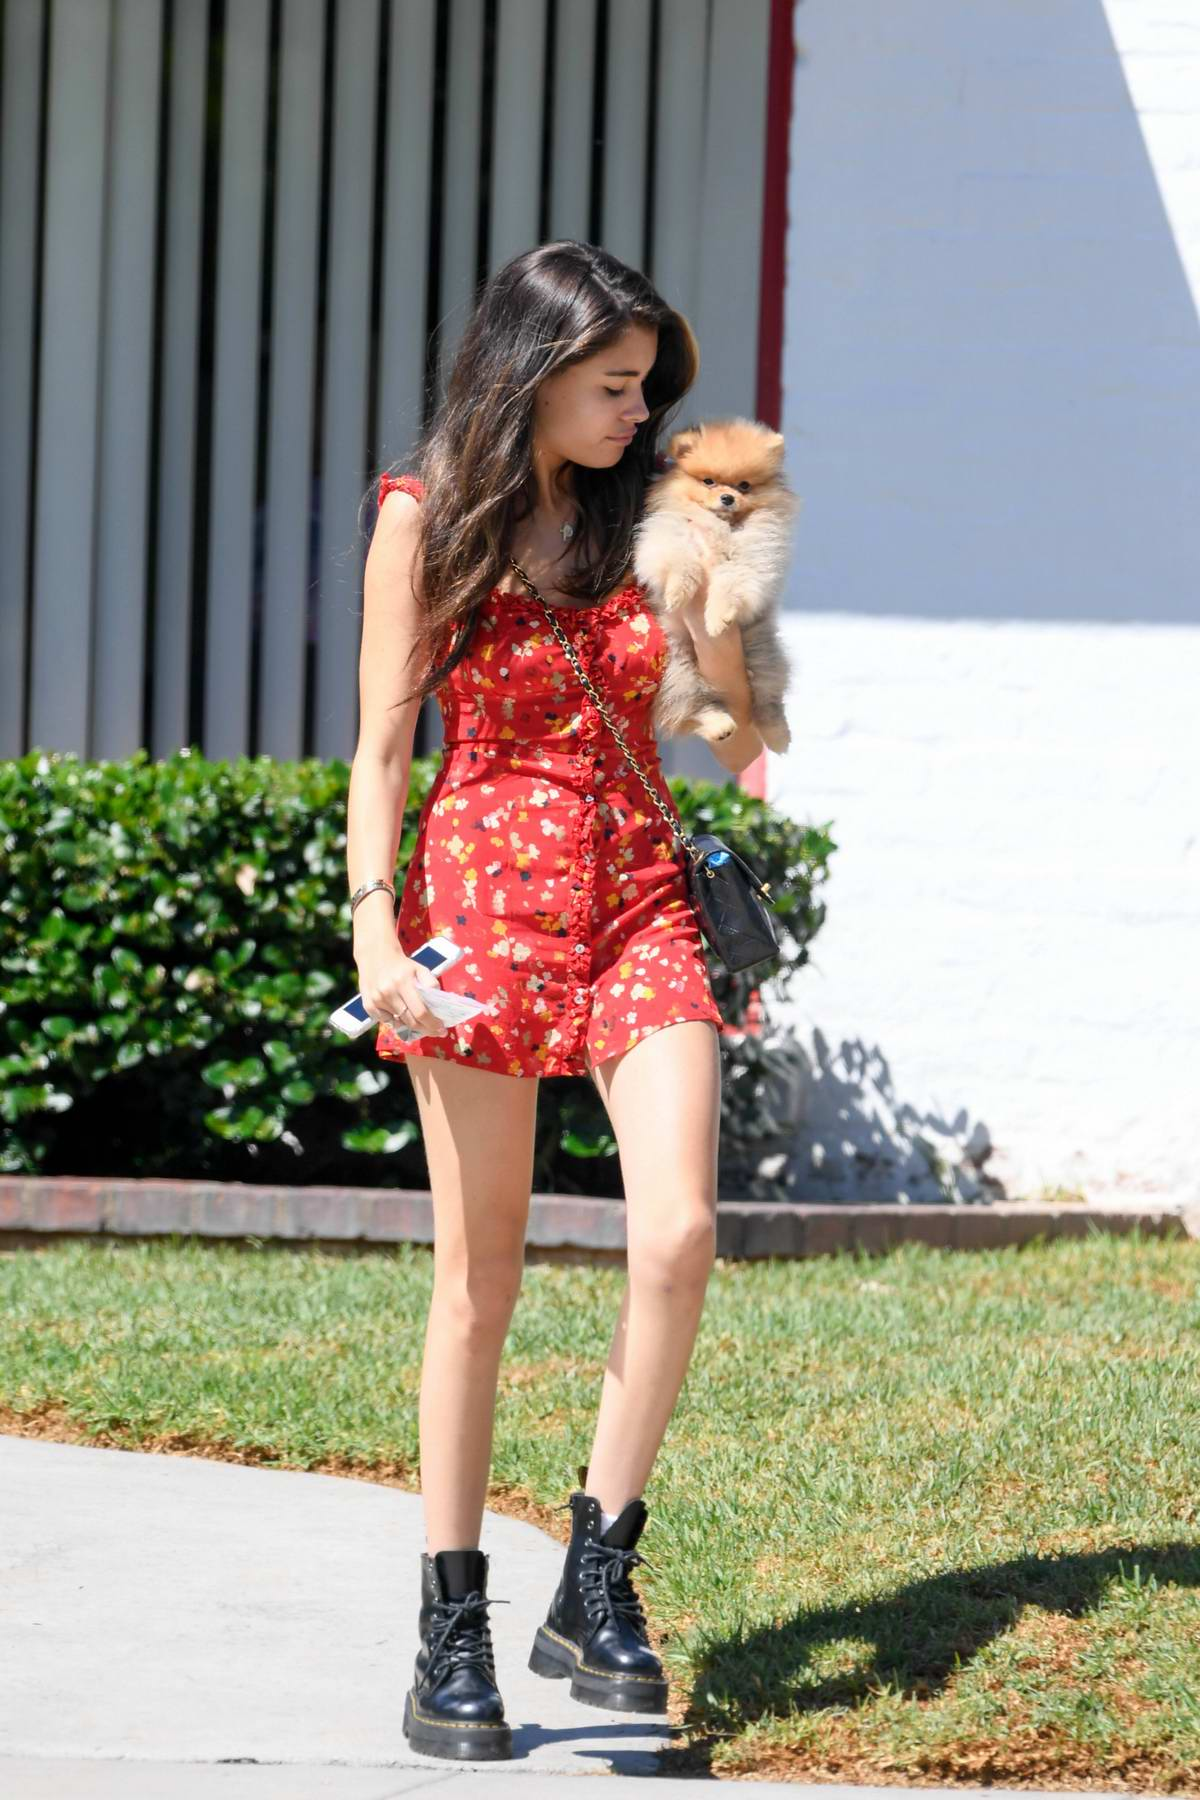 Madison Beer wears a short red dress as she takes her puppy to a vet in Beverly Hills, Los Angeles